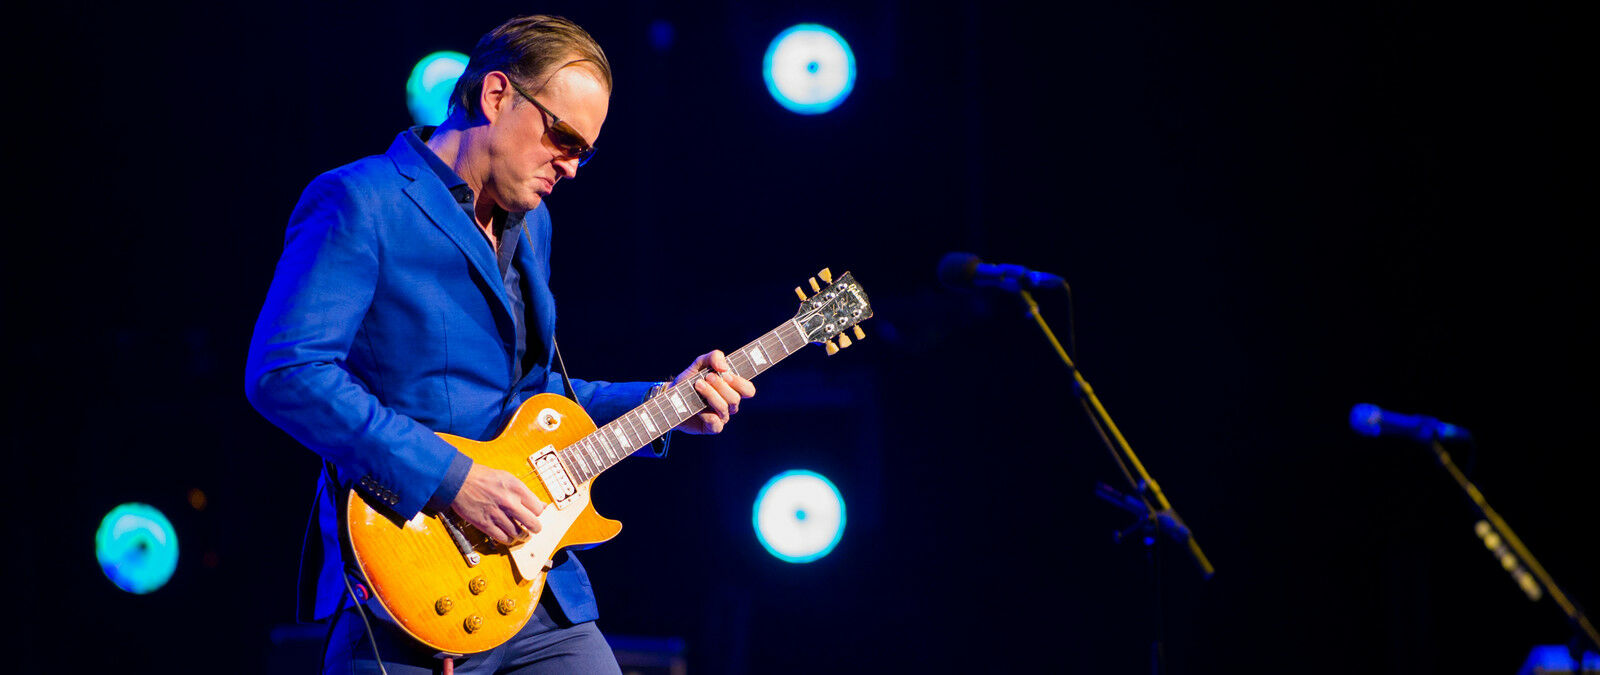 PARKING PASSES ONLY Joe Bonamassa